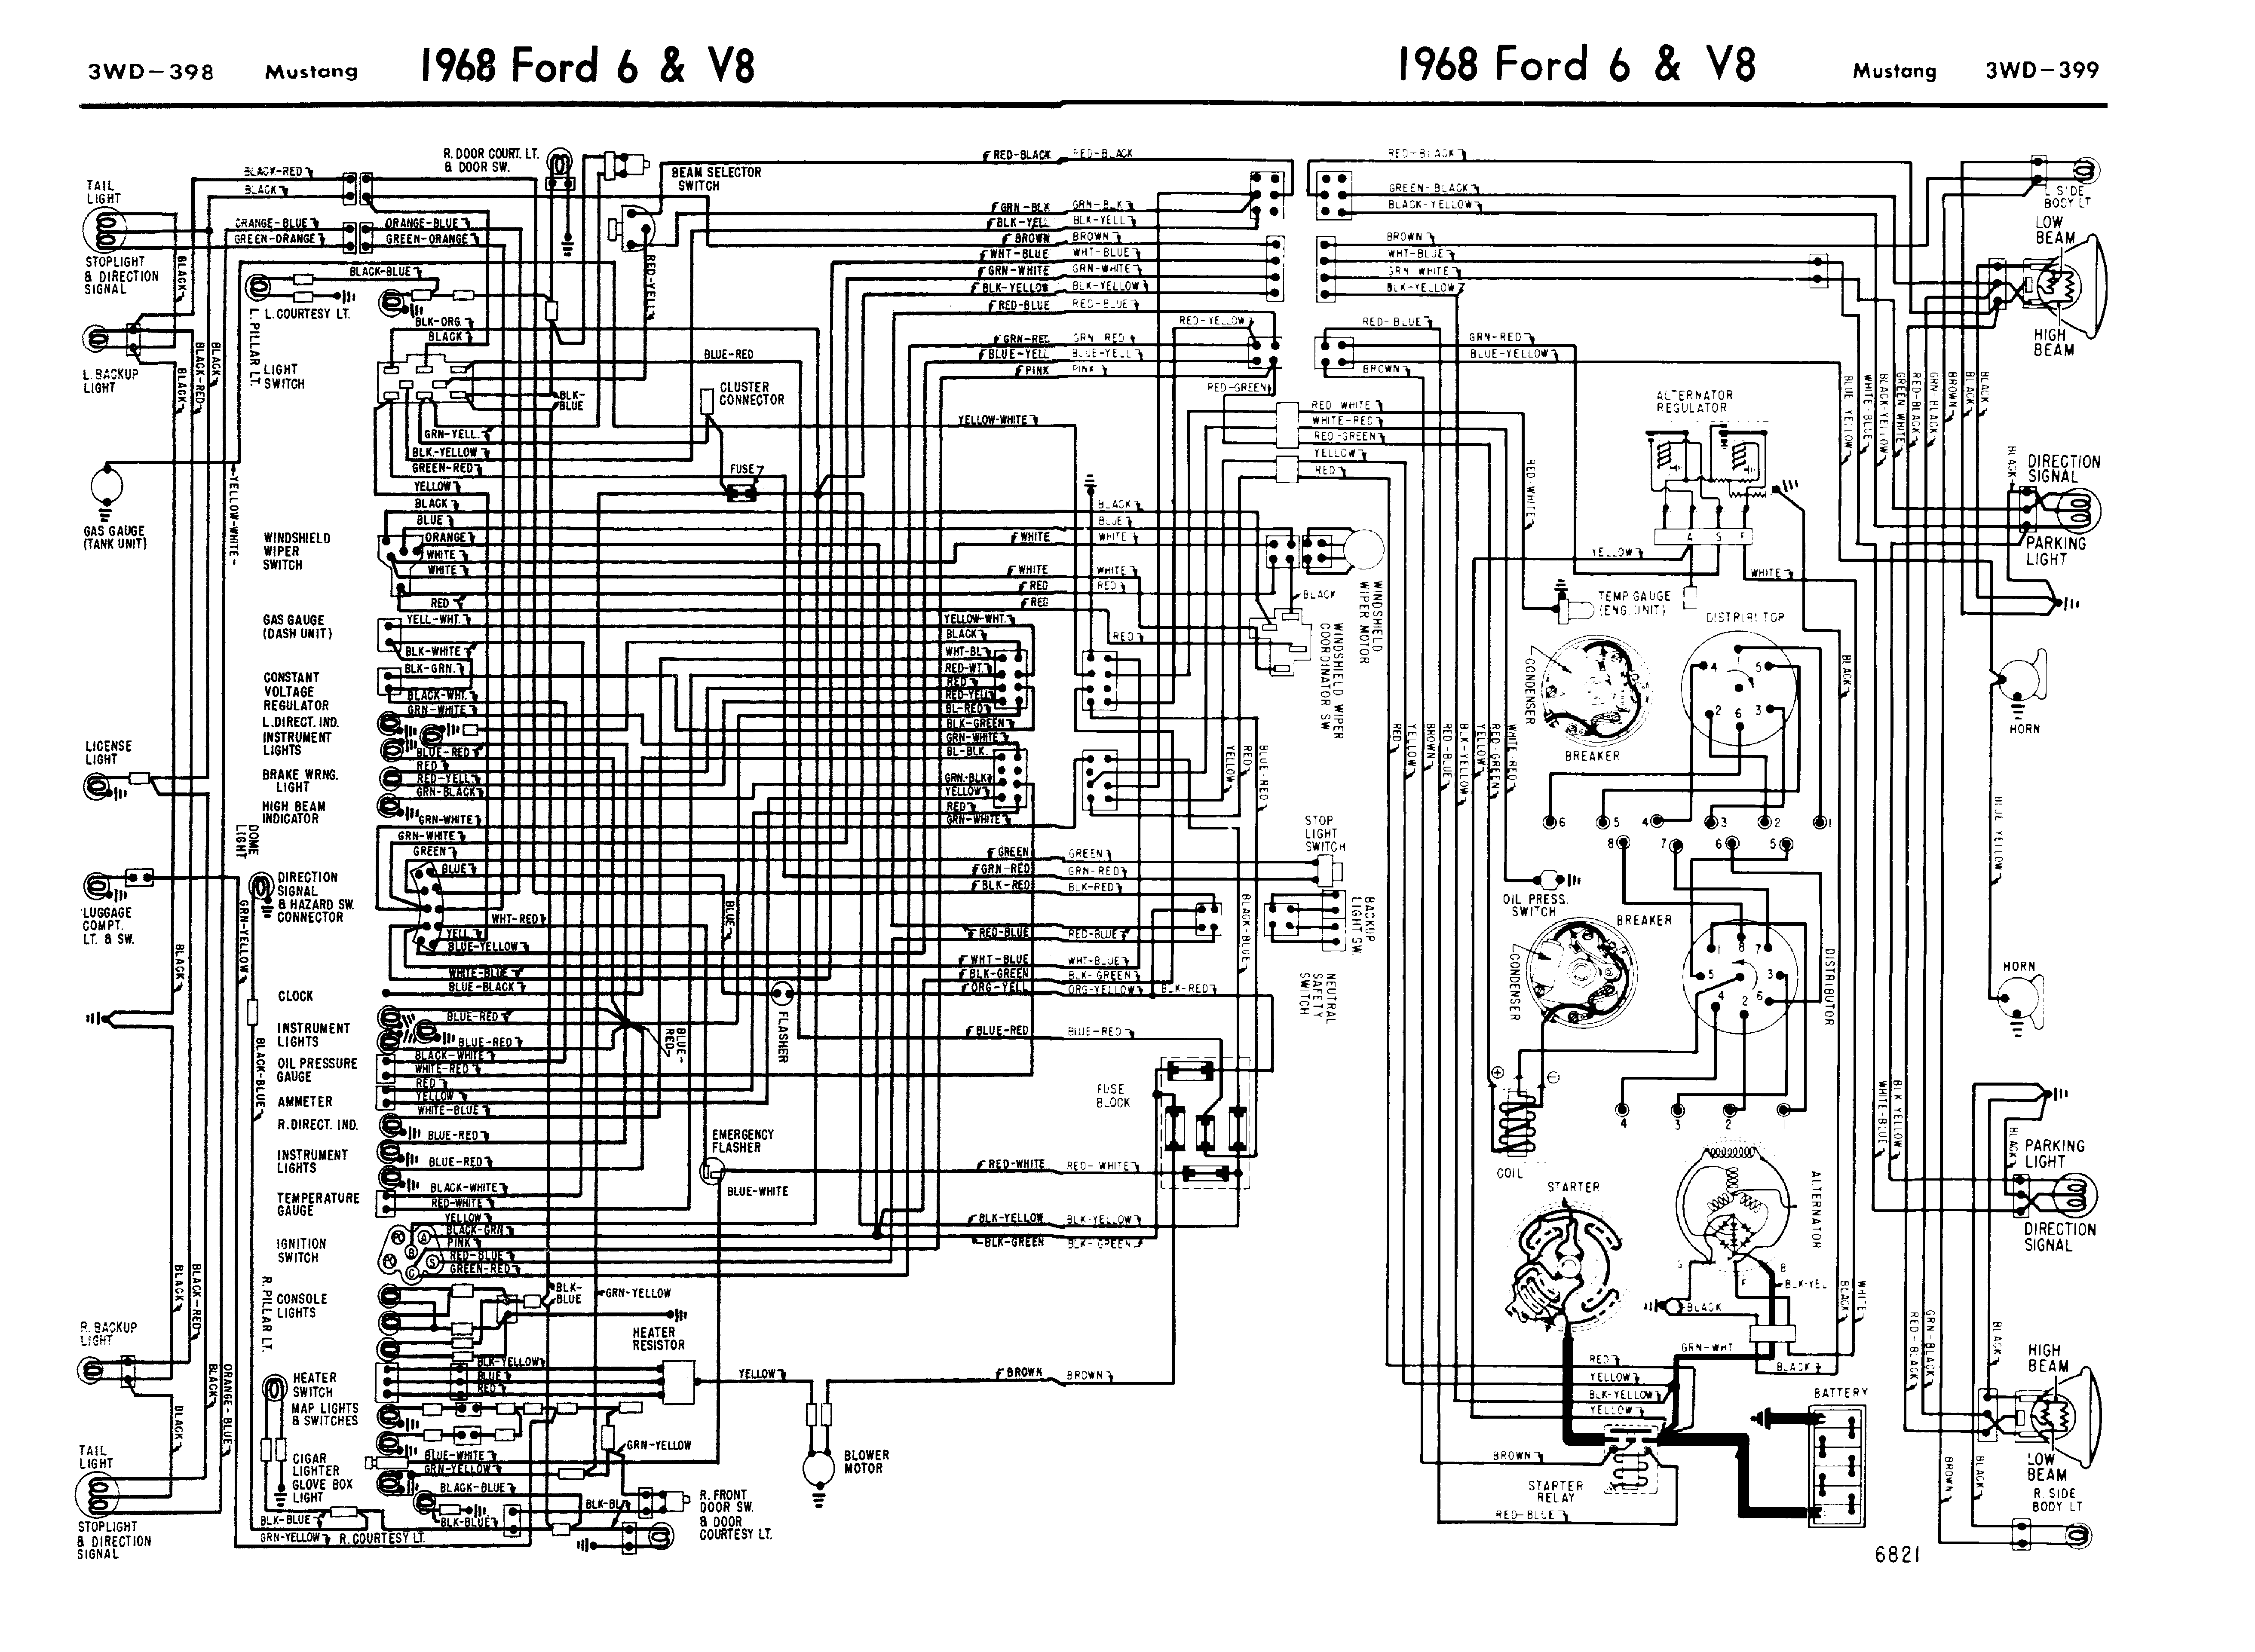 68mustang_wiring_guide 1968 mustang wiring diagrams evolving software 2001 mustang wiring diagram at virtualis.co